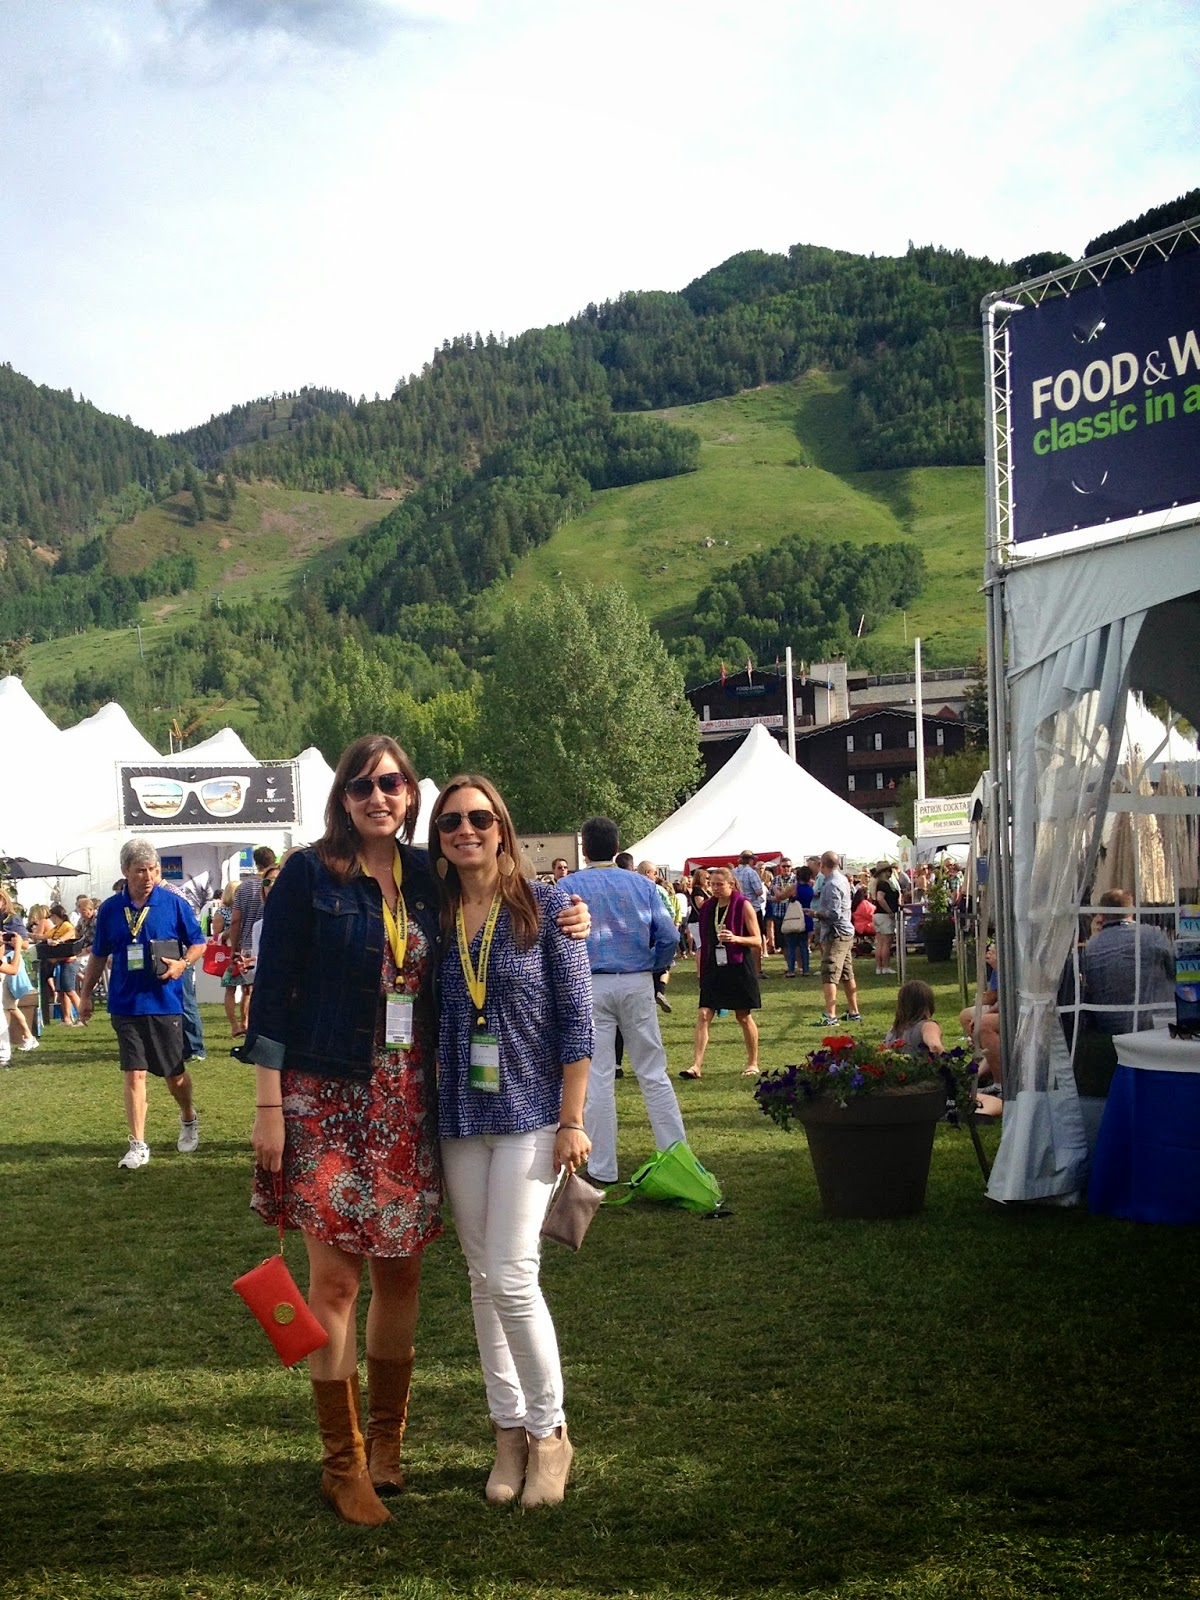 Aspen FOOD & WINE Classic - The Memories